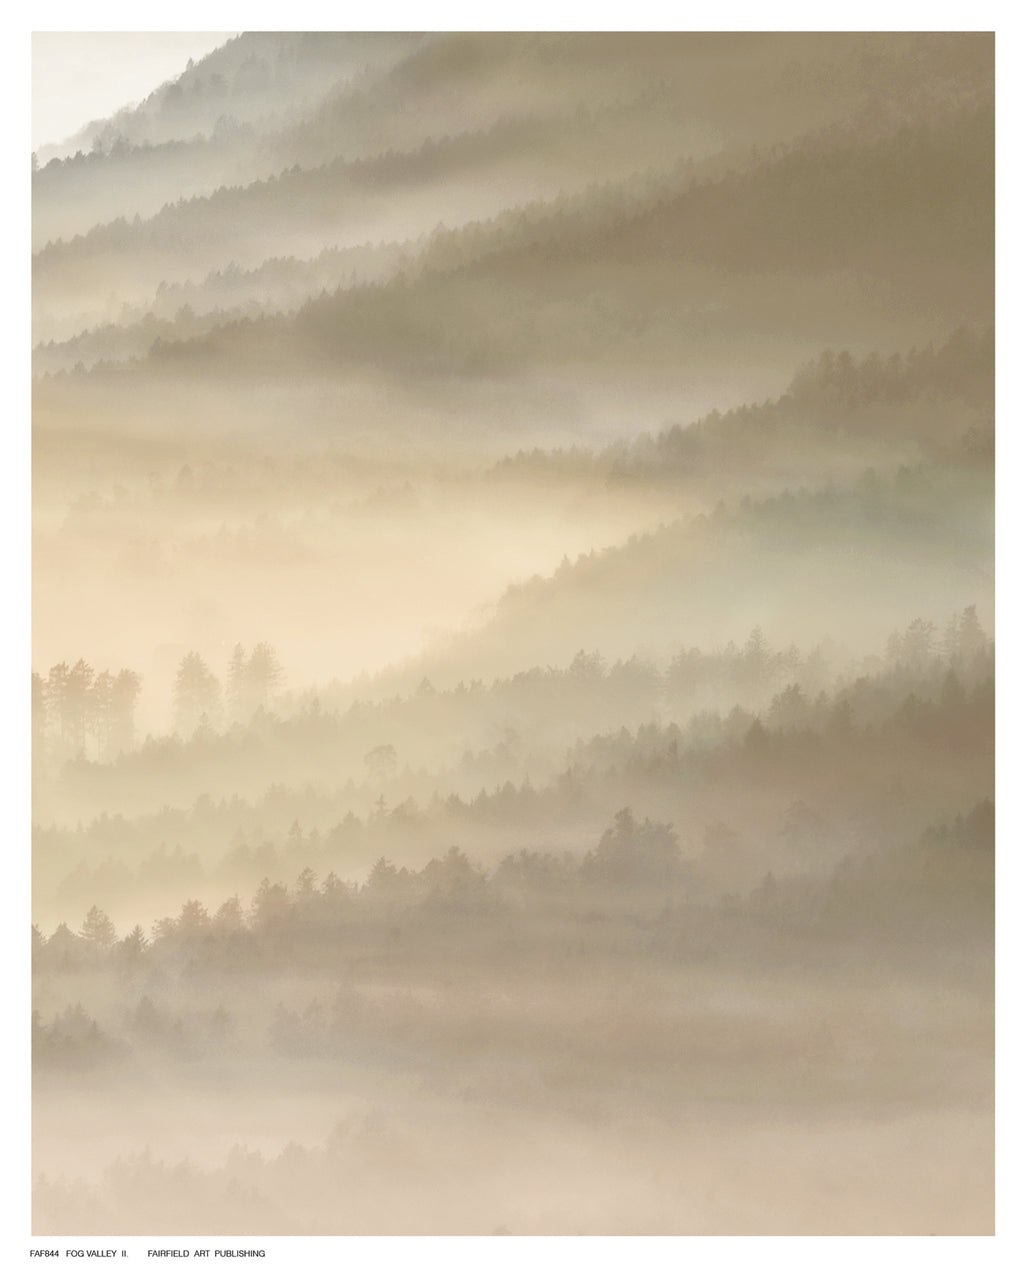 Fog Valley Il. Landscapes by Herzog - FairField Art Publishing